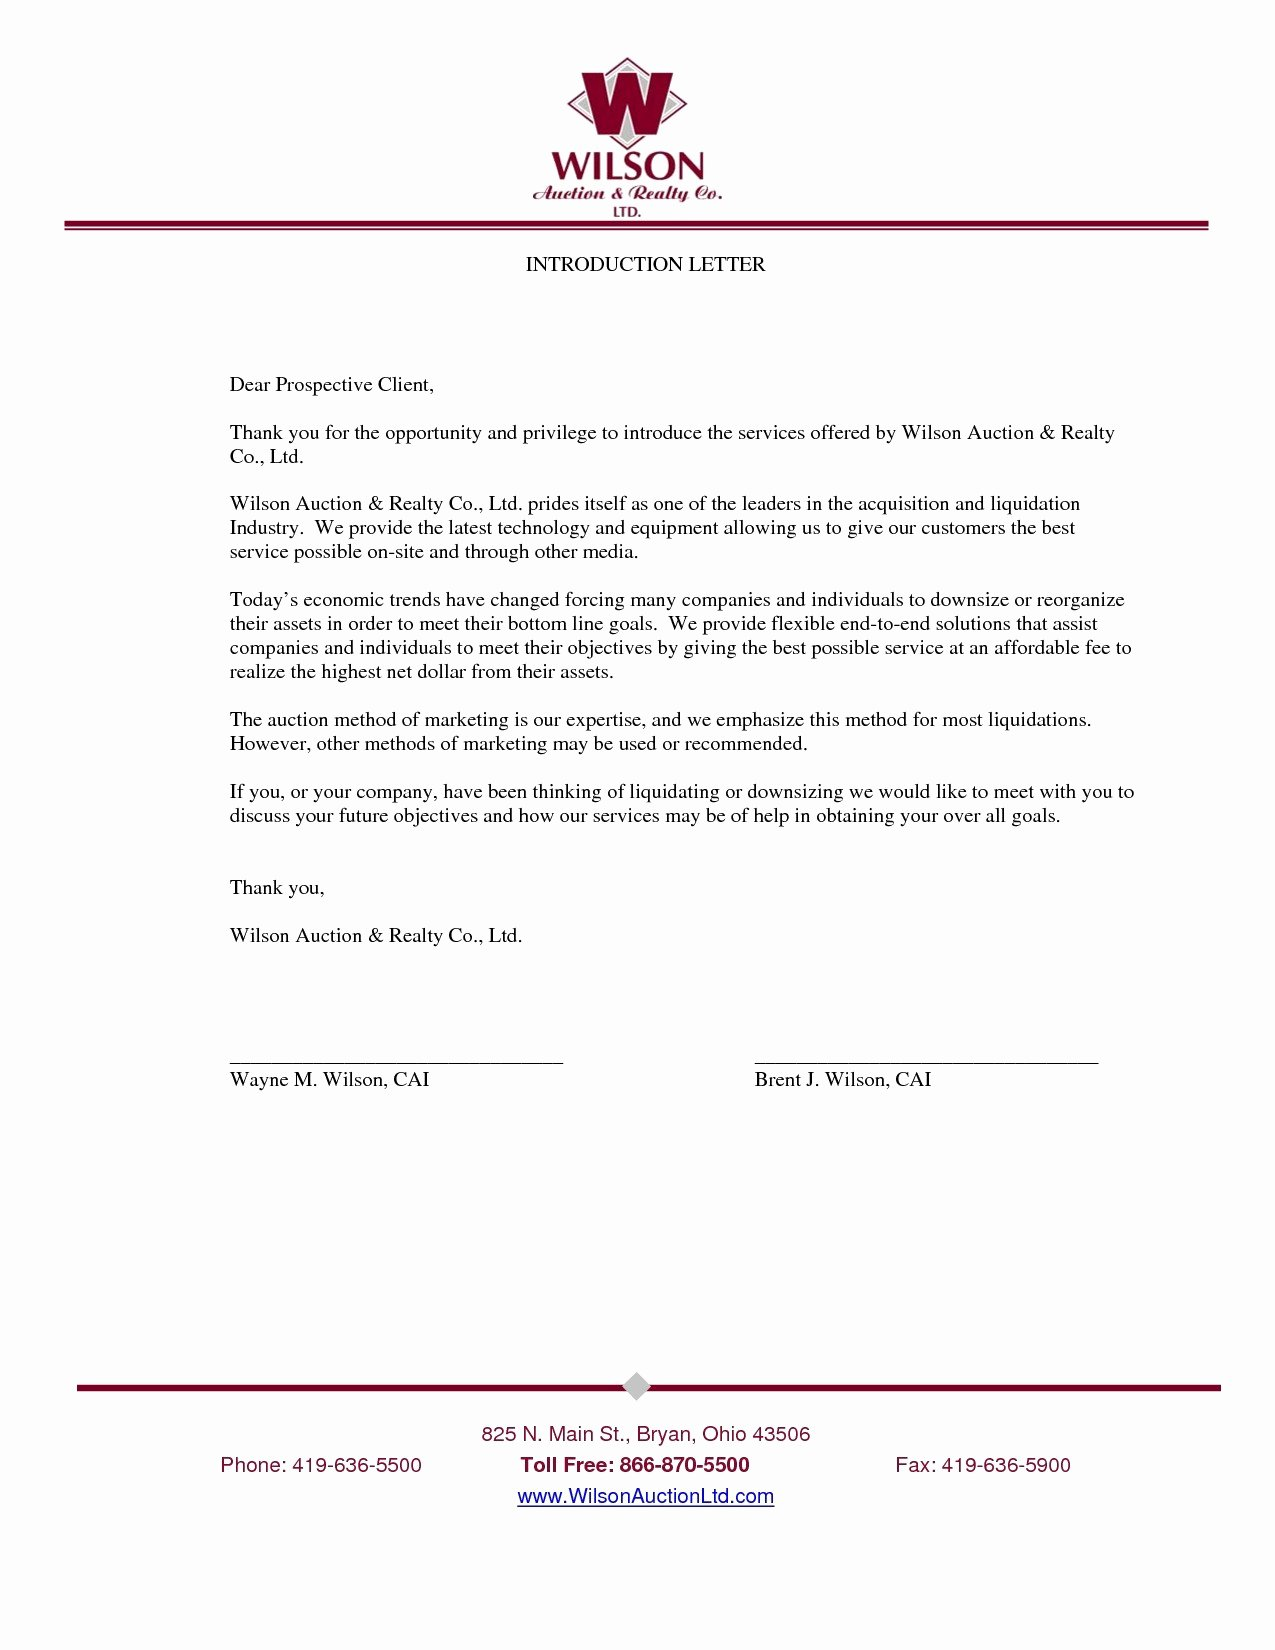 Letter Of Introduction Template Fresh New Pany Introduction Letter